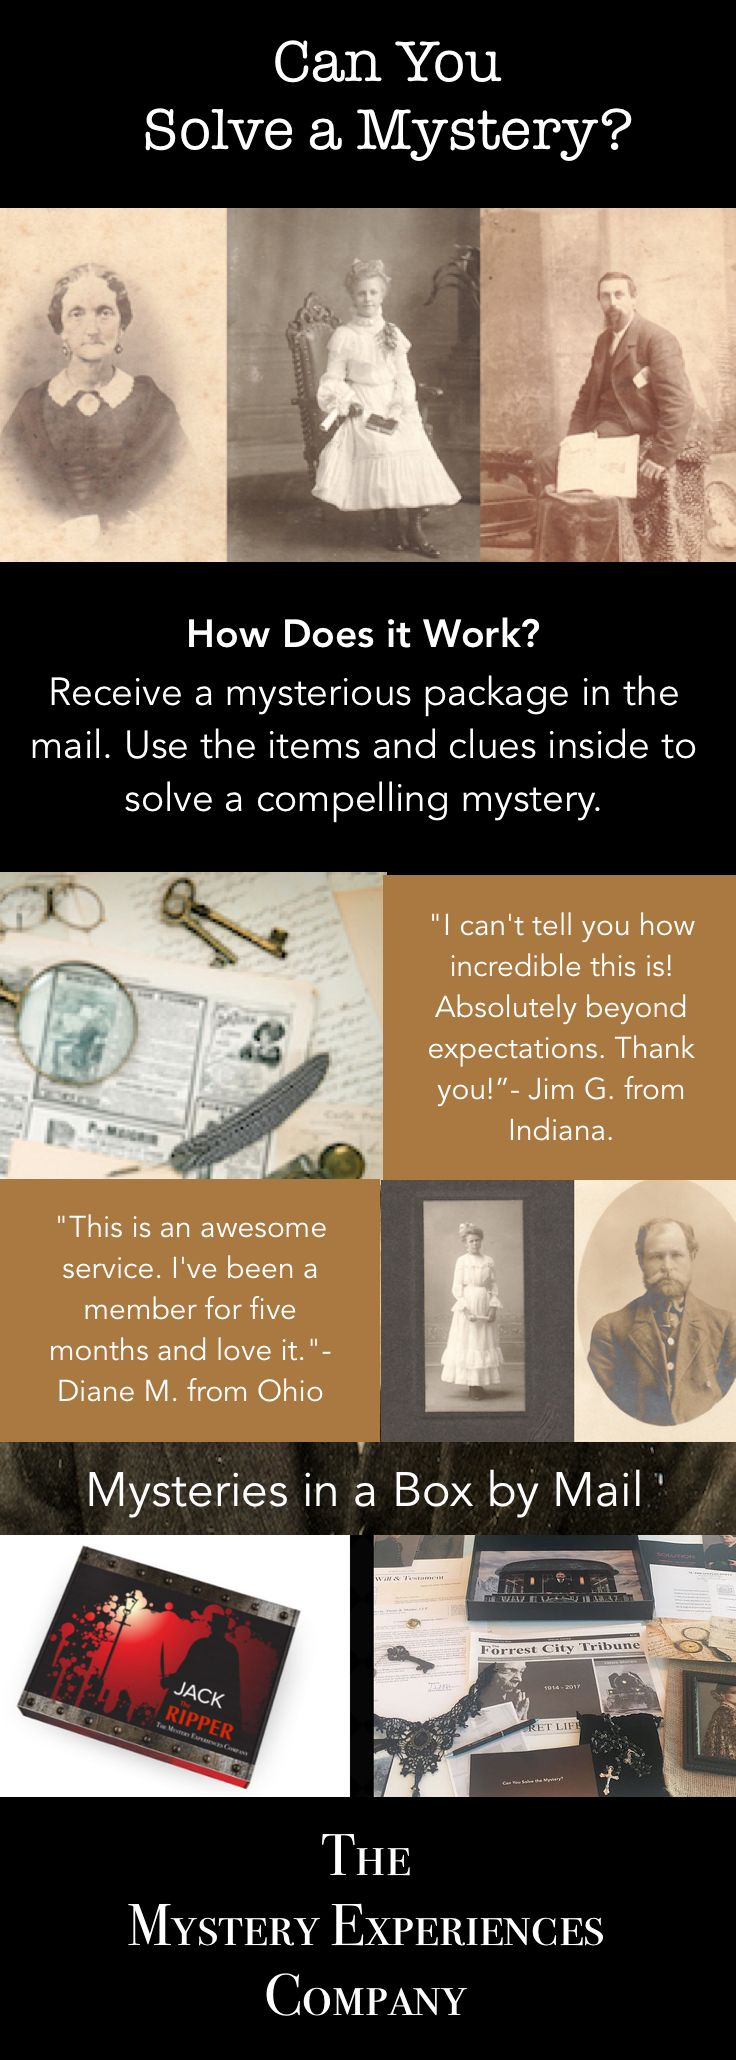 "CAN YOU SOLVE THE MYSTERY? | Our mysteries are created by internationally acclaimed author CHRISTOPHER FORREST. His bestselling novels have been published in the US, Canada, Germany, Greece, Spain, Central America & South America. We also produce mysteries in partnership w/ entertainment companies such as 20th CENTURY FOX for the movie ""MURDER ON THE ORIENT EXPRESS."""